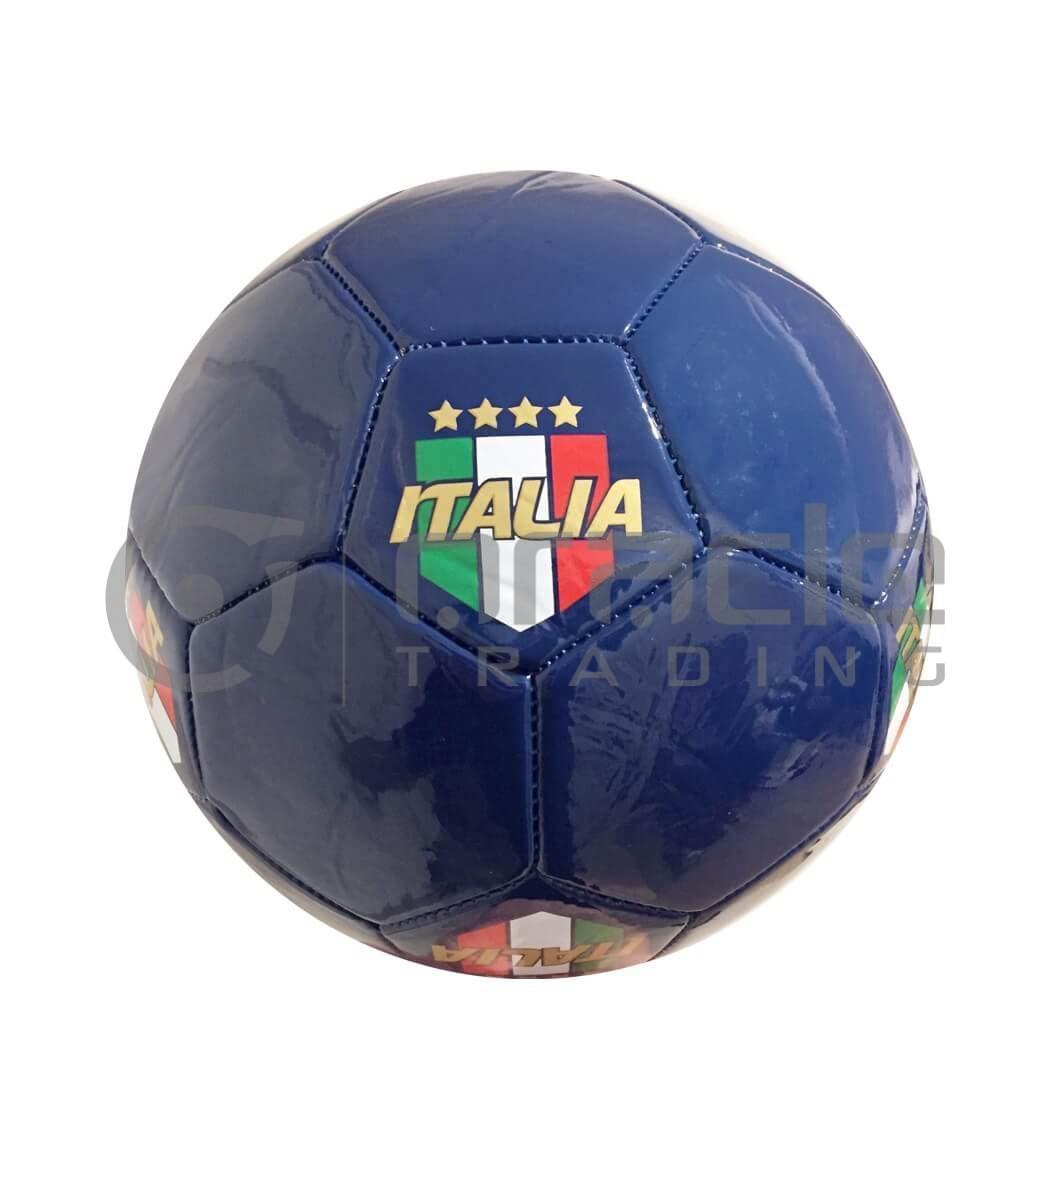 Italia Large Soccer Ball - Blue